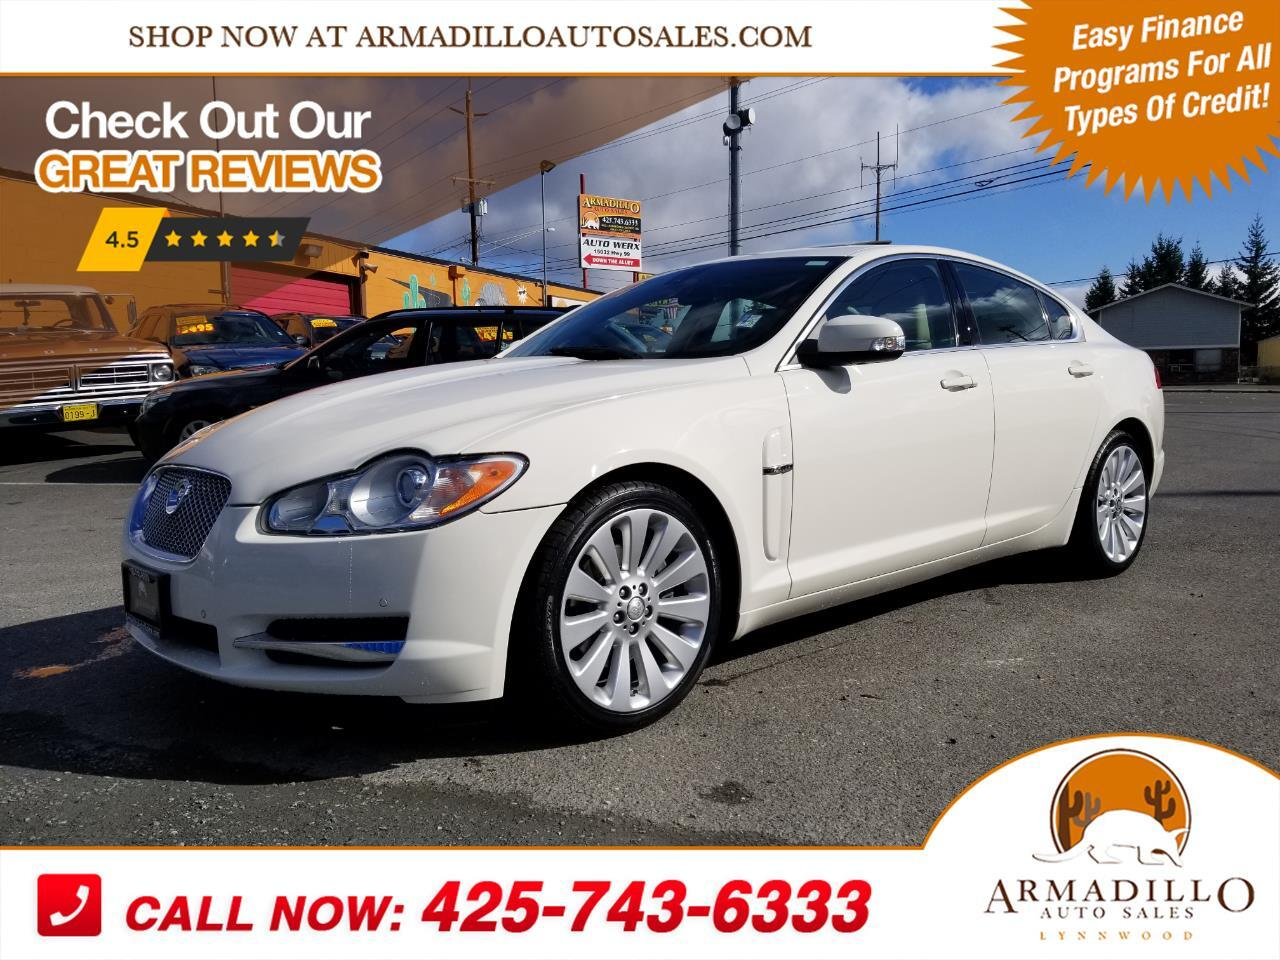 2009 Jaguar XF Luxury Sedan